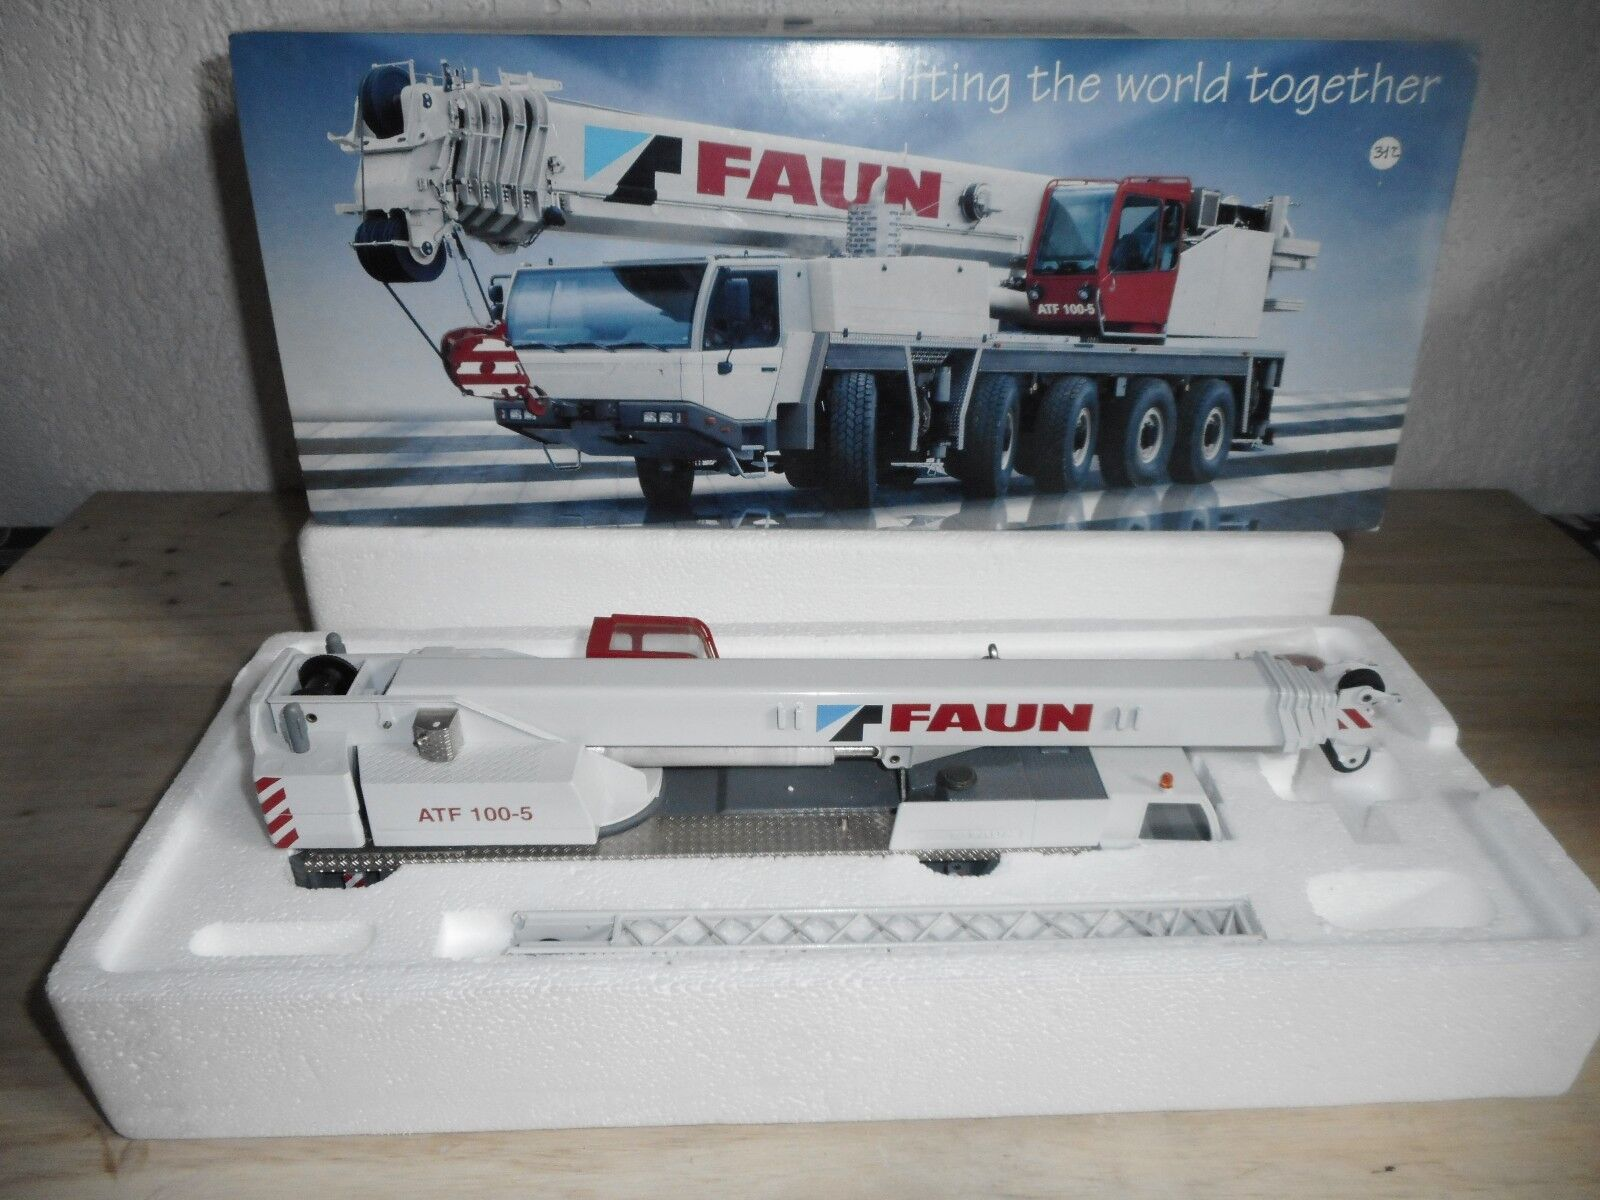 Adano faun atf 100-5  all terrain krane conrad no. 2096 1 50 nouveau + box  réductions et plus